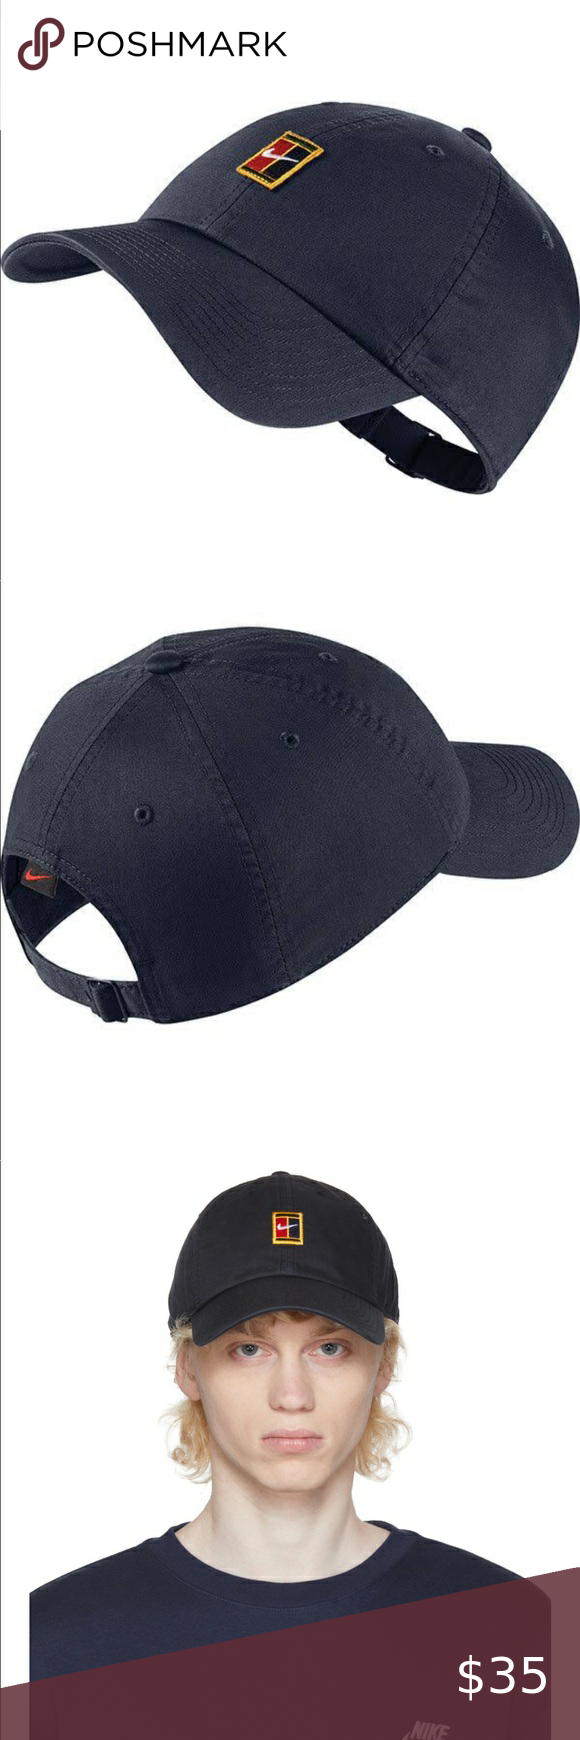 Nike Court Heritage 86 Logo Cap Tennis Black In 2020 Clothes Design Cotton Twill Fabric Fashion